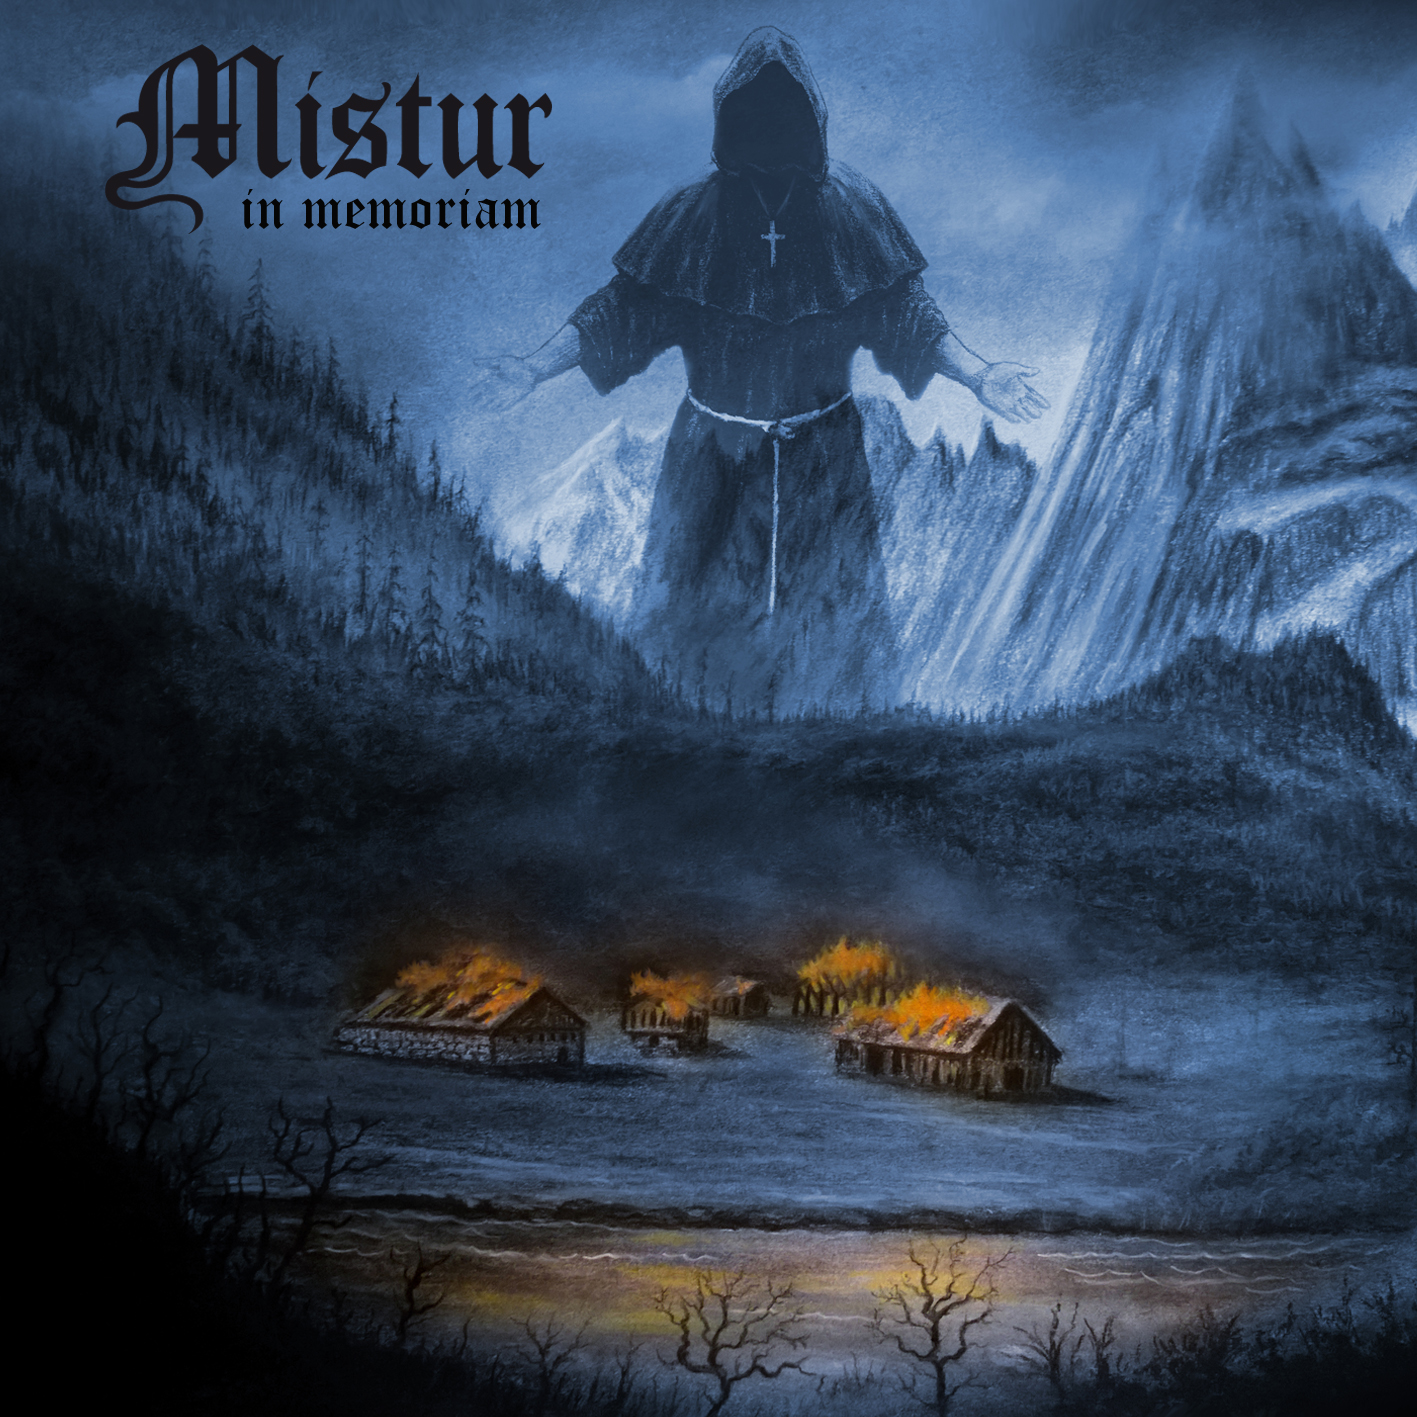 In Memoriam by Mistur. Out on Dark Essence Records April 29 2016